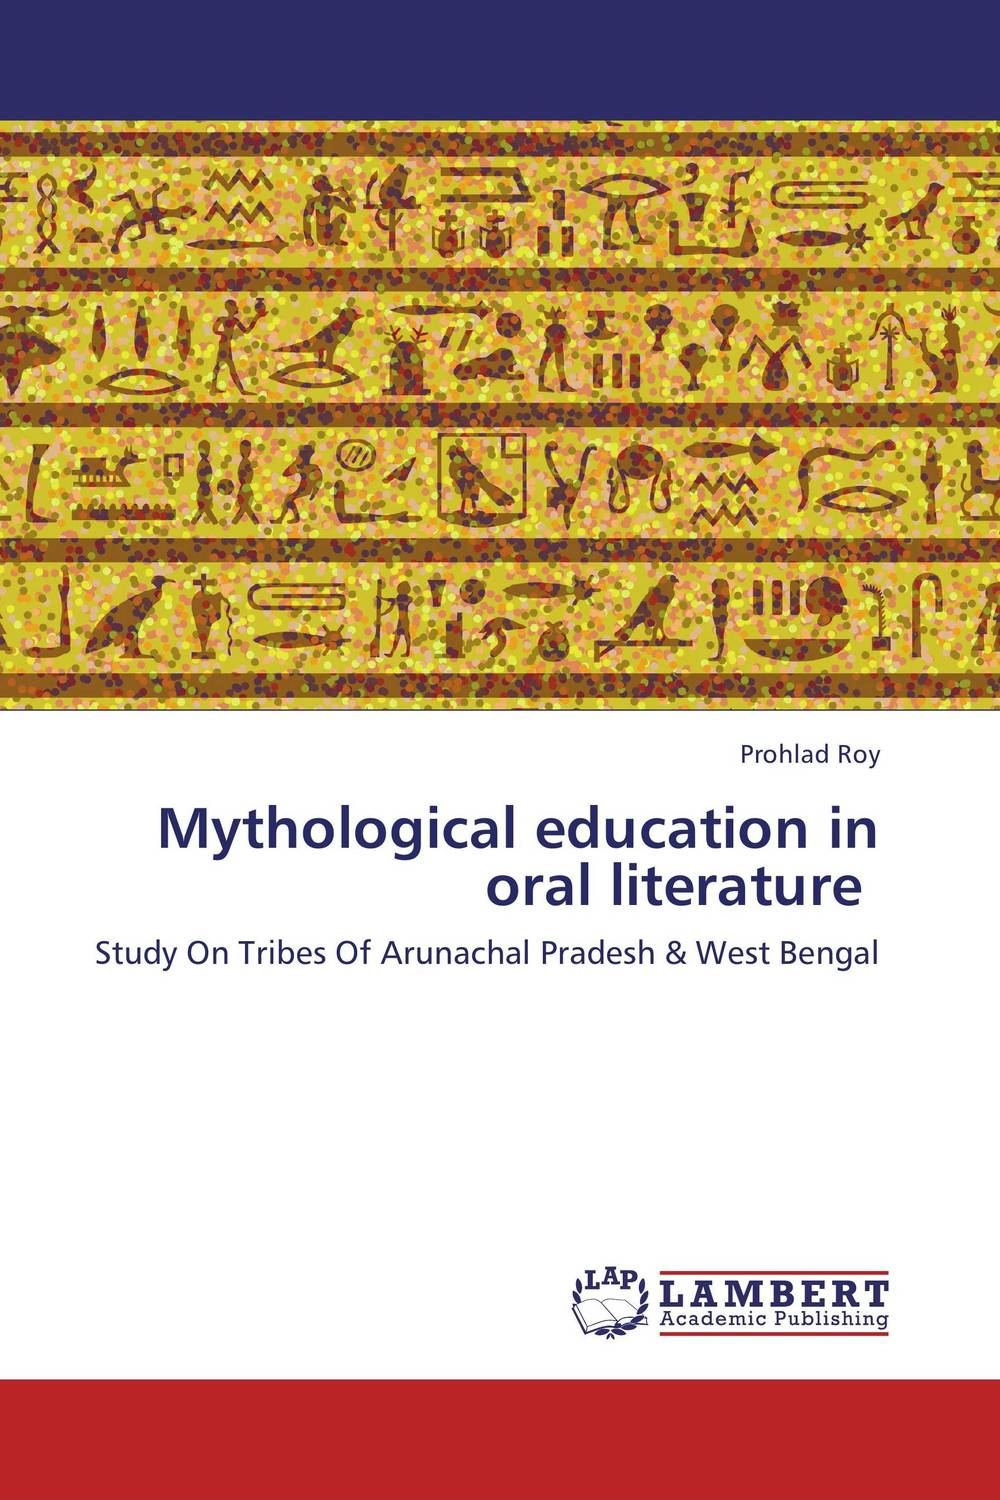 Mythological education in oral literature american garden literature in the dumbarton oaks collection 1785–1900